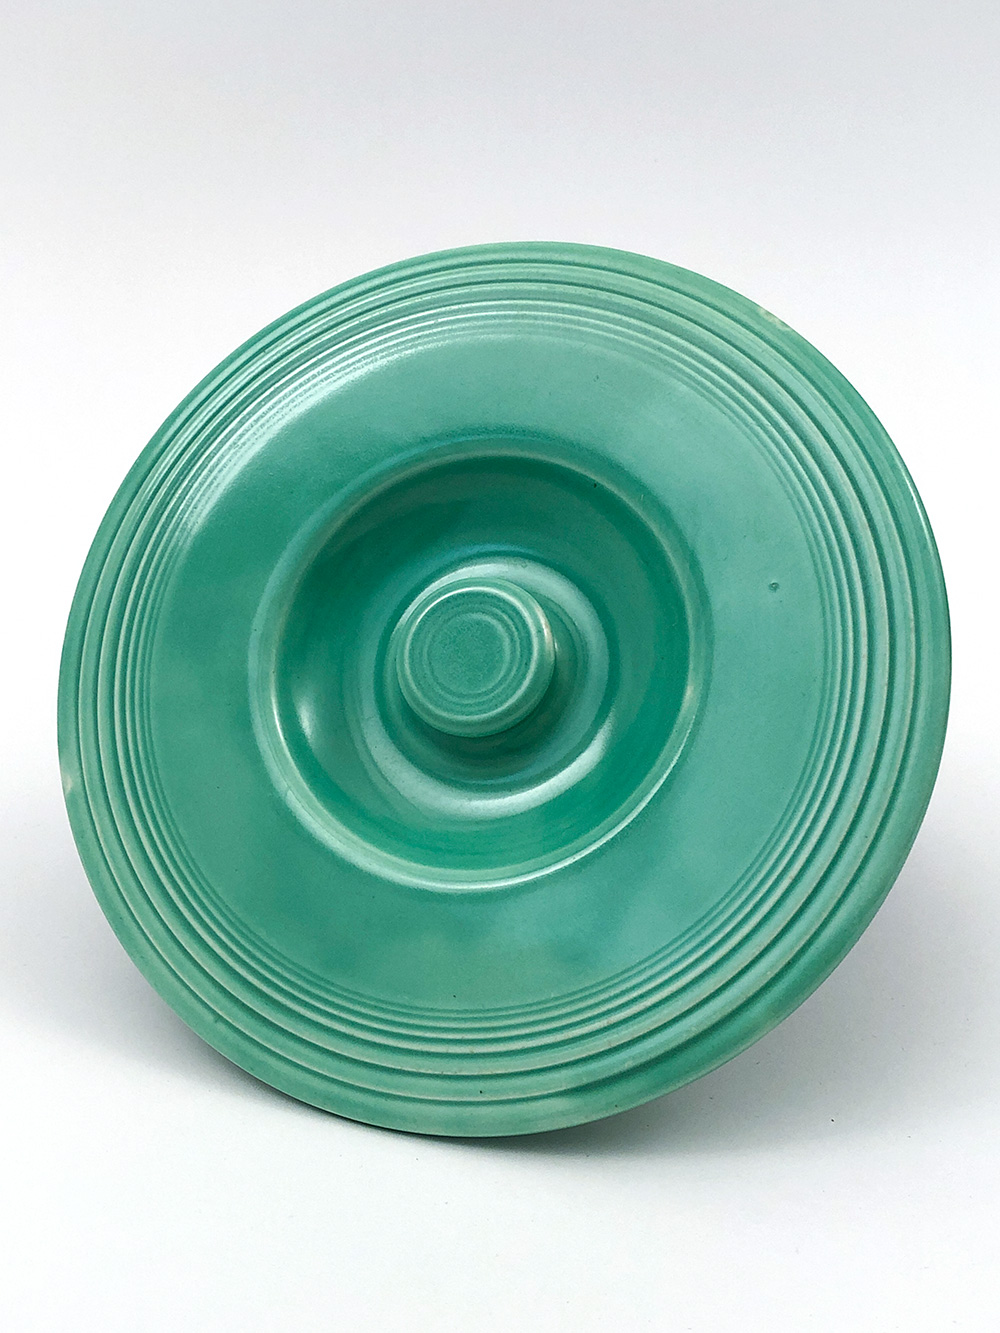 vintage fiesta green mixing bowl lid for sale